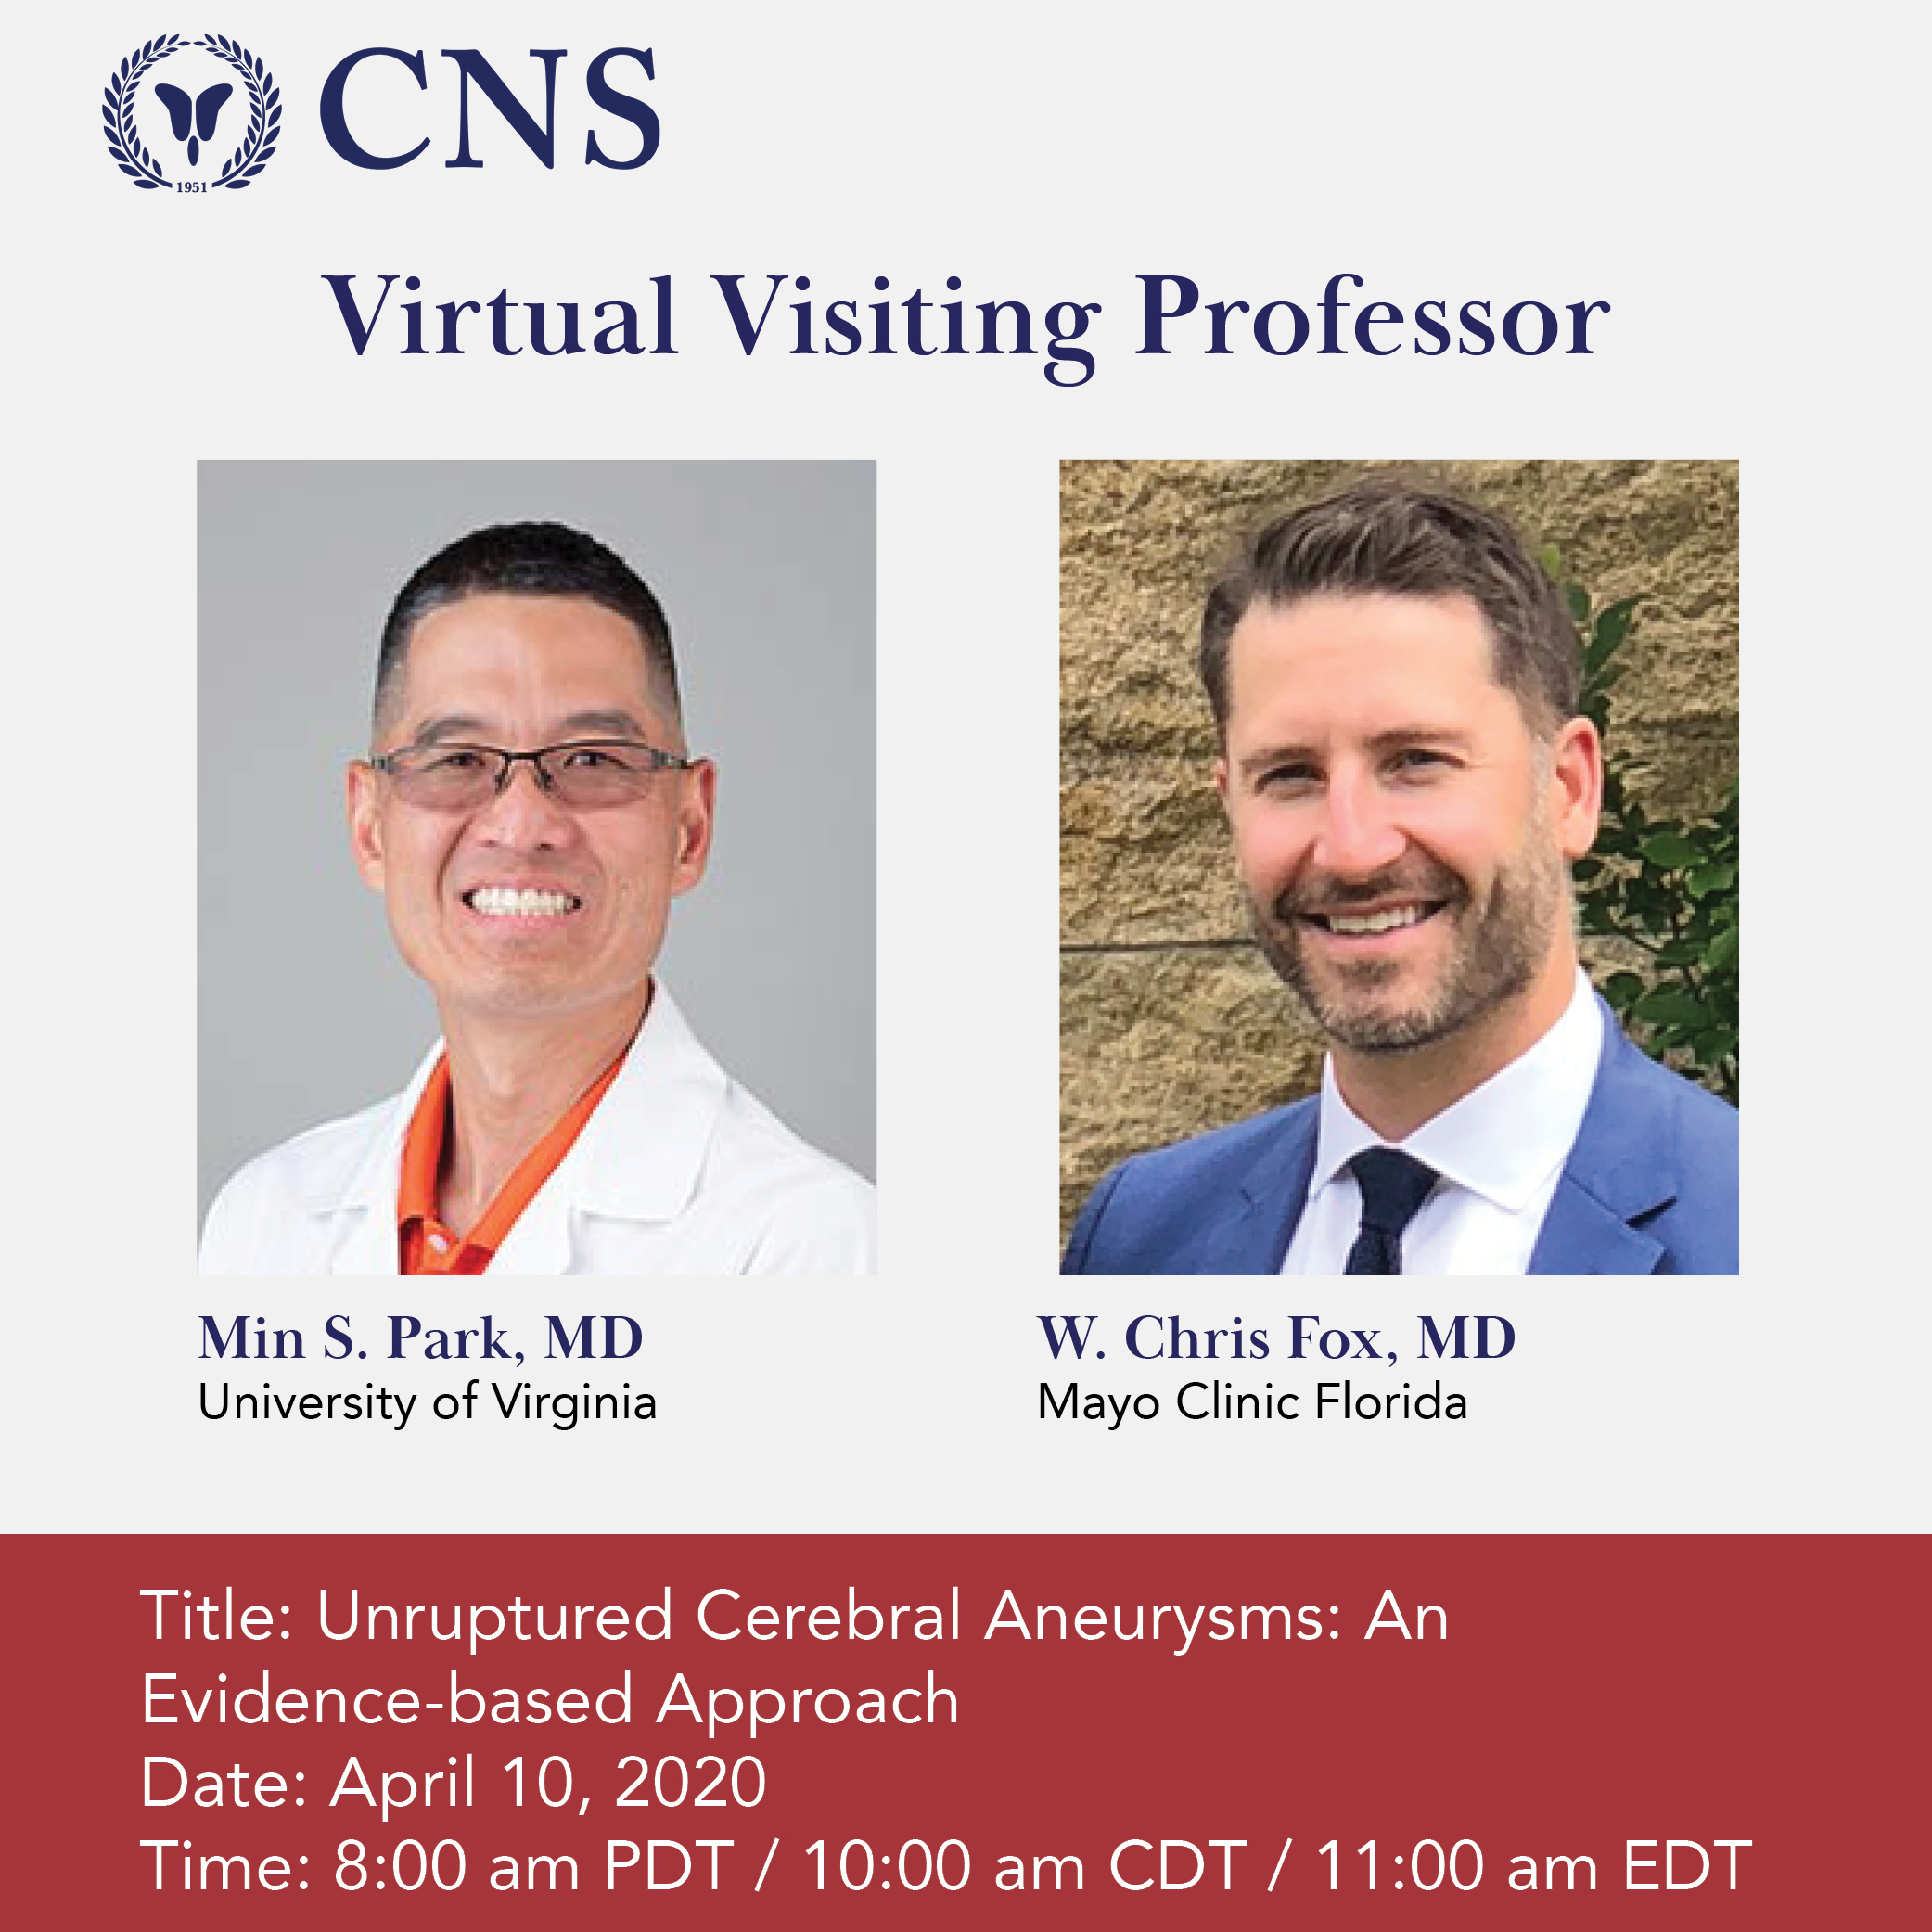 CNS Virtual Visiting Professor neurosurgery conference 2020